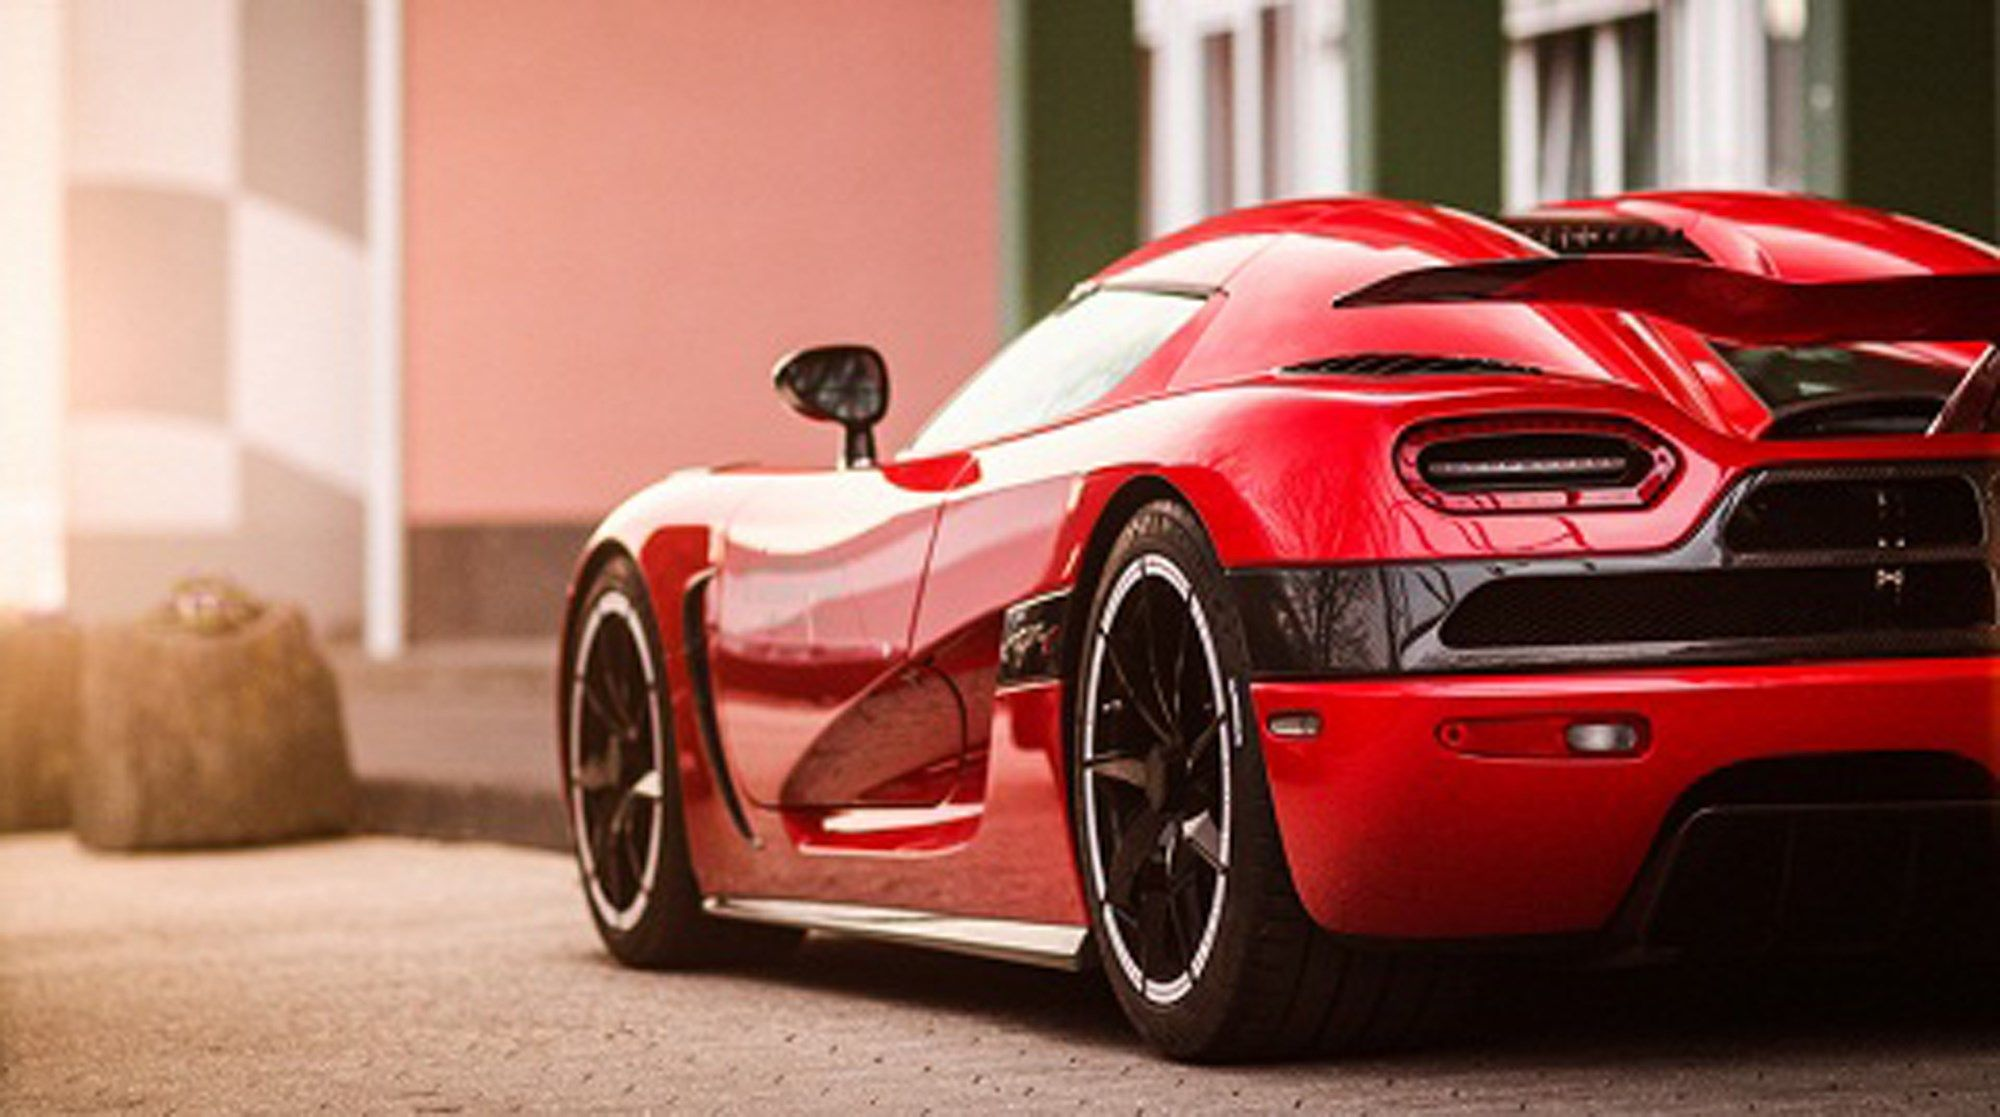 Top Free Koenigsegg Backgrounds